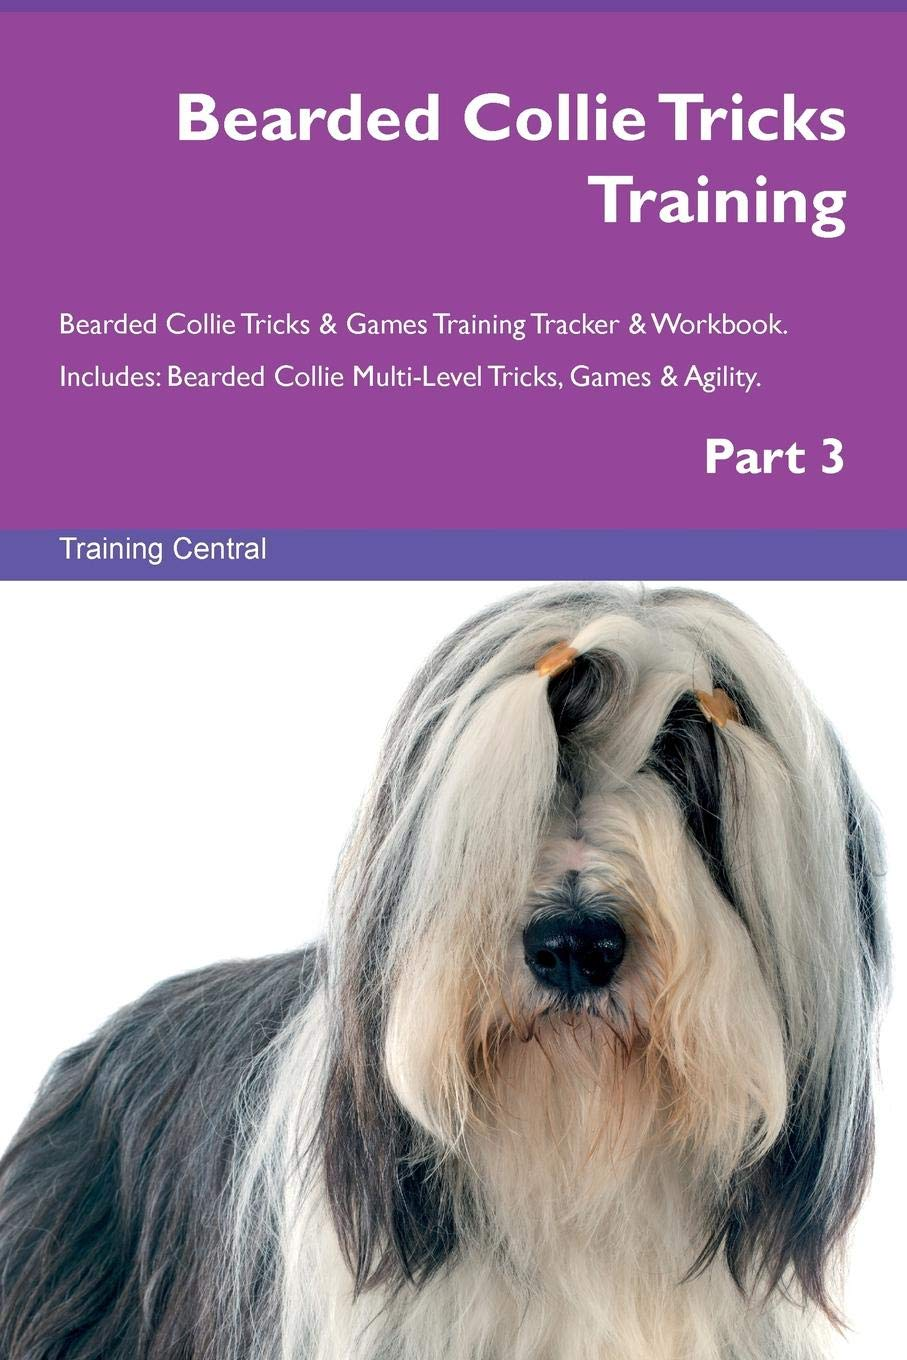 Bearded Collie Tricks Training Bearded Collie Tricks & Games Training Tracker & Workbook.  Includes: Bearded Collie Multi-Level Tricks, Games & Agility. Part 3